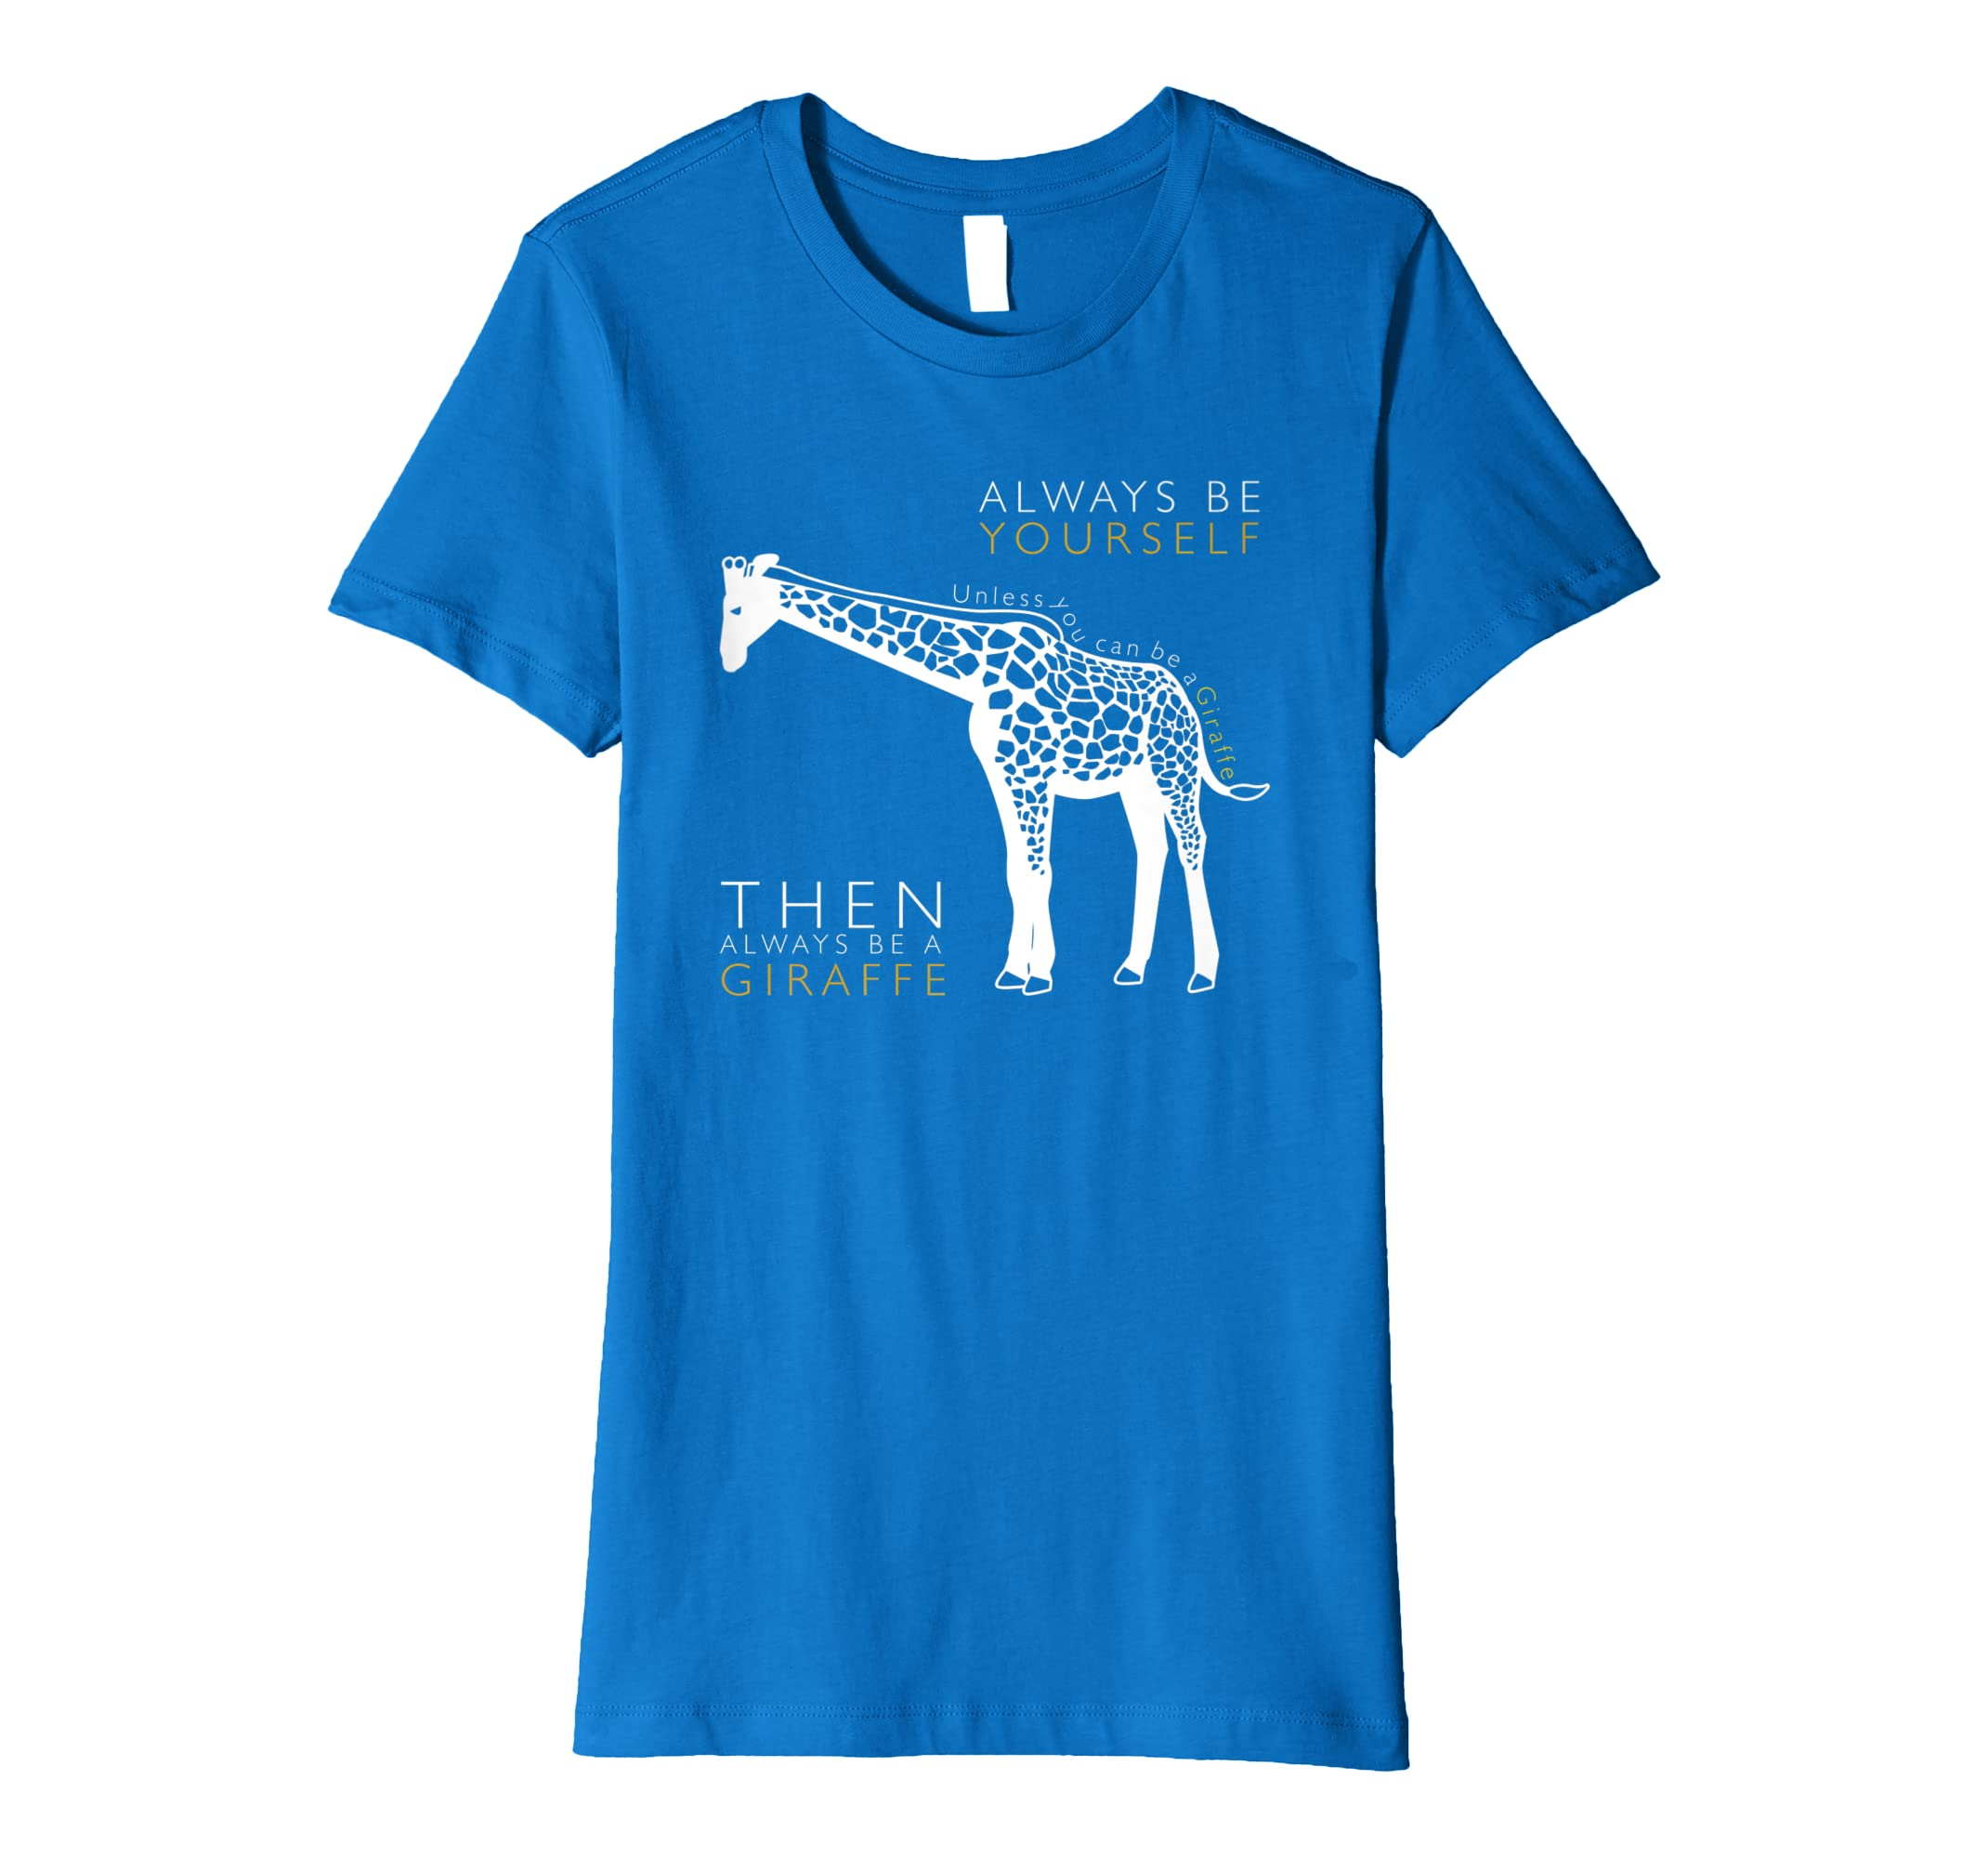 90ad6a80d4 Amazon.com: Always Be Yourself Unless Be You Can Be A Giraffe T-Shirt:  Clothing